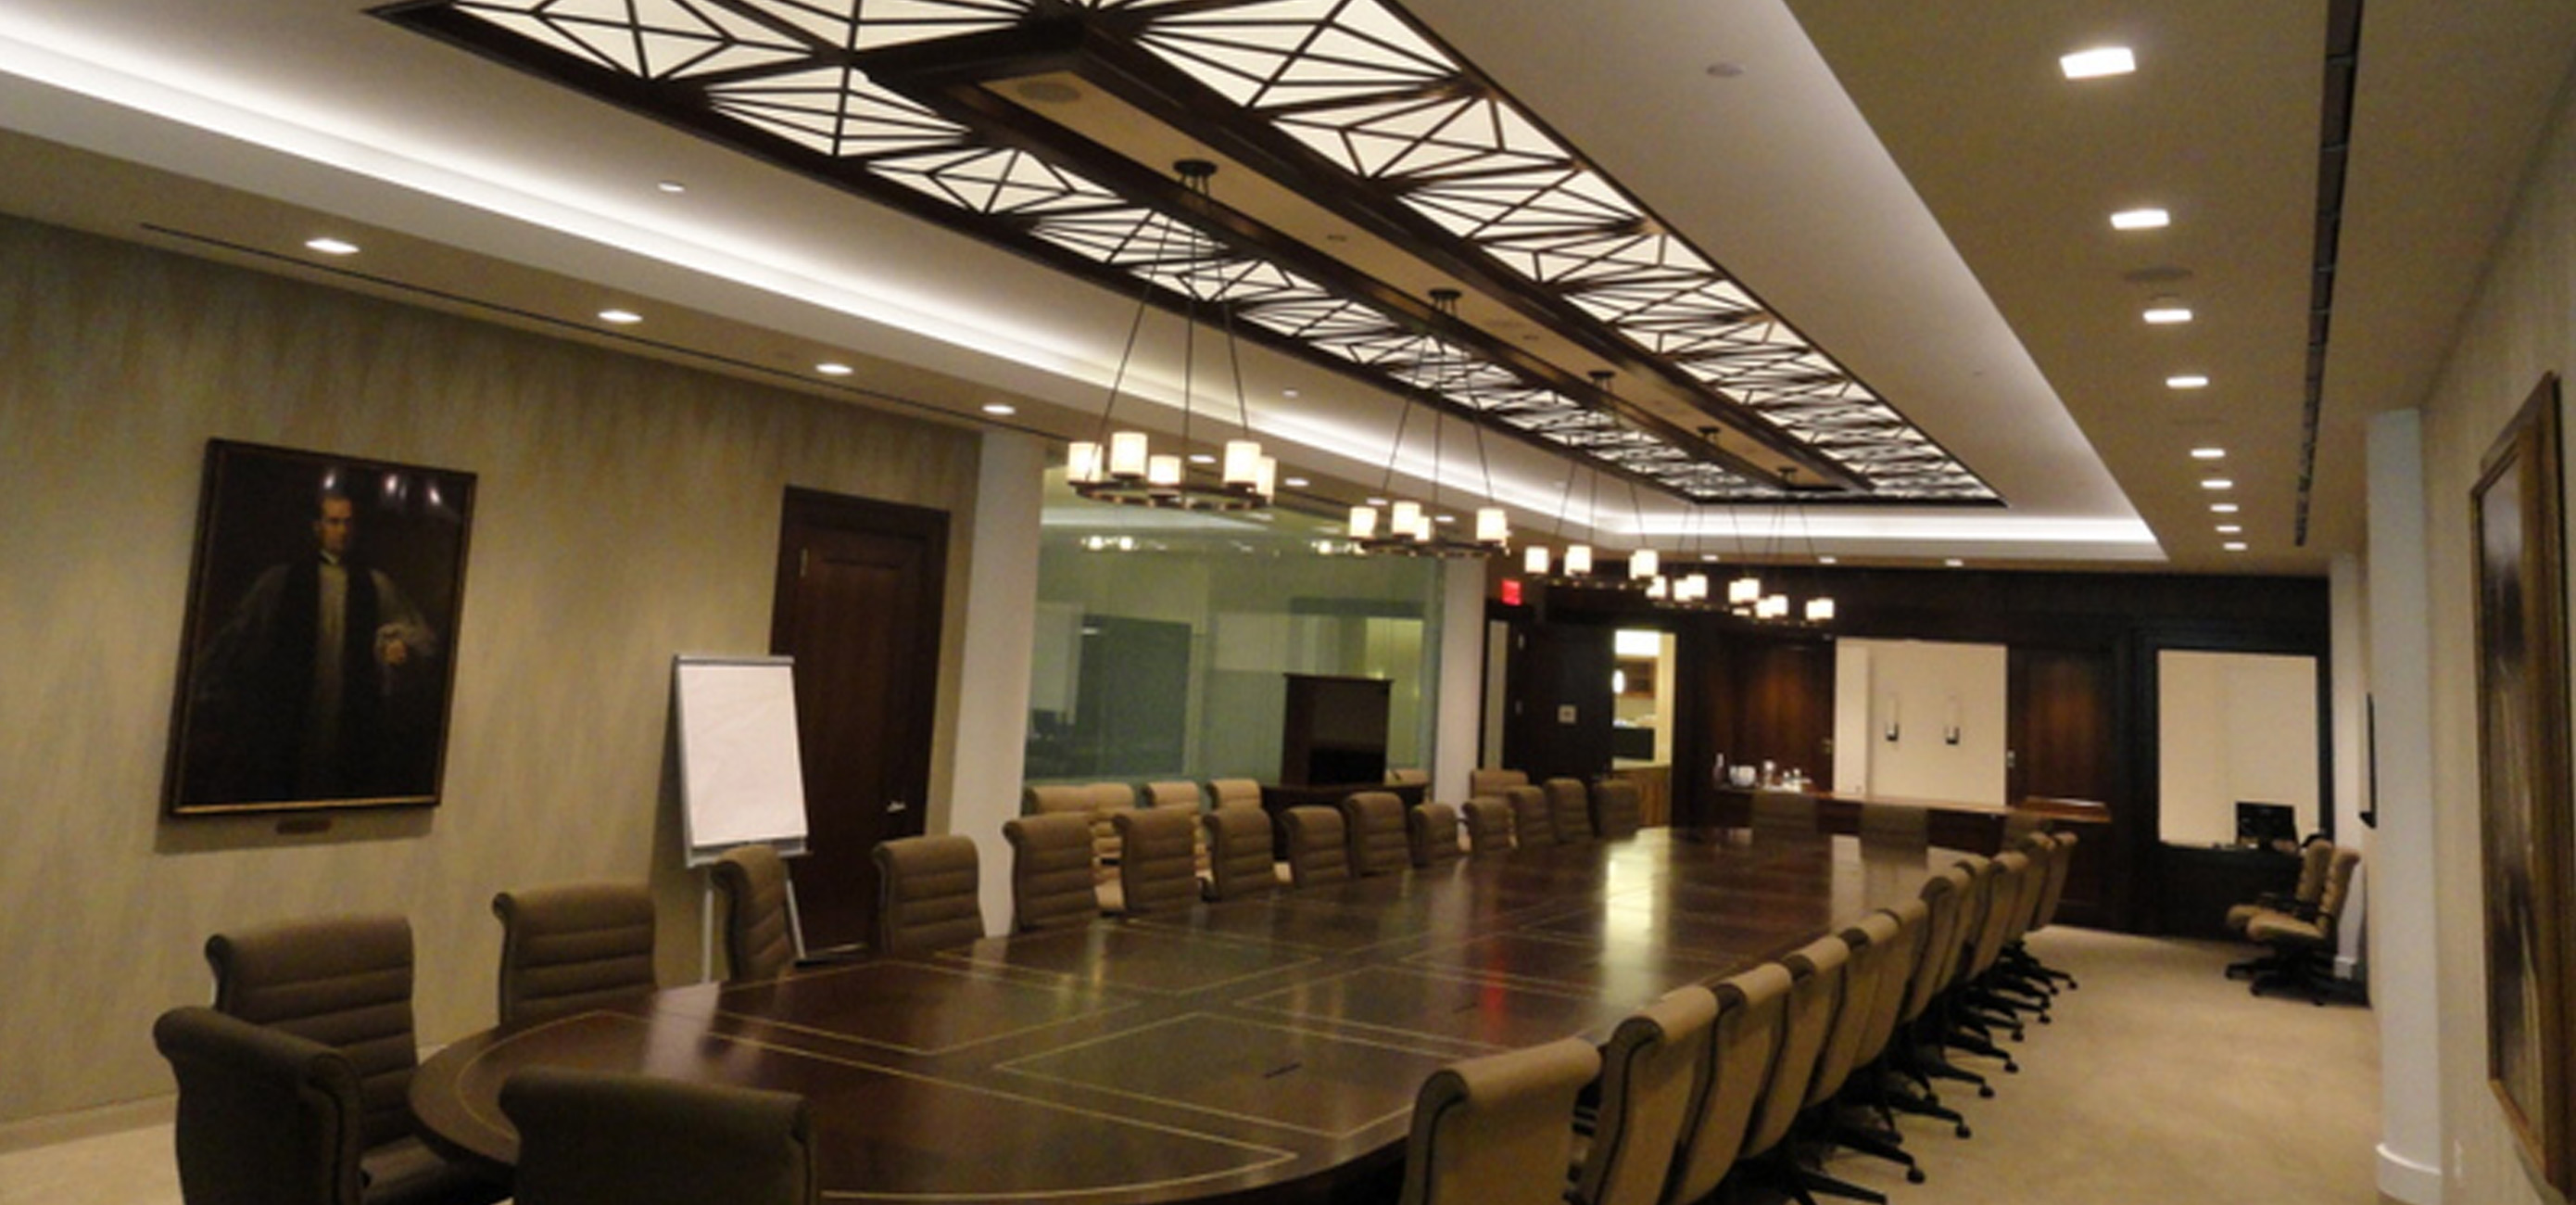 Latest News The Birds And Bees Of Designing Conference Rooms